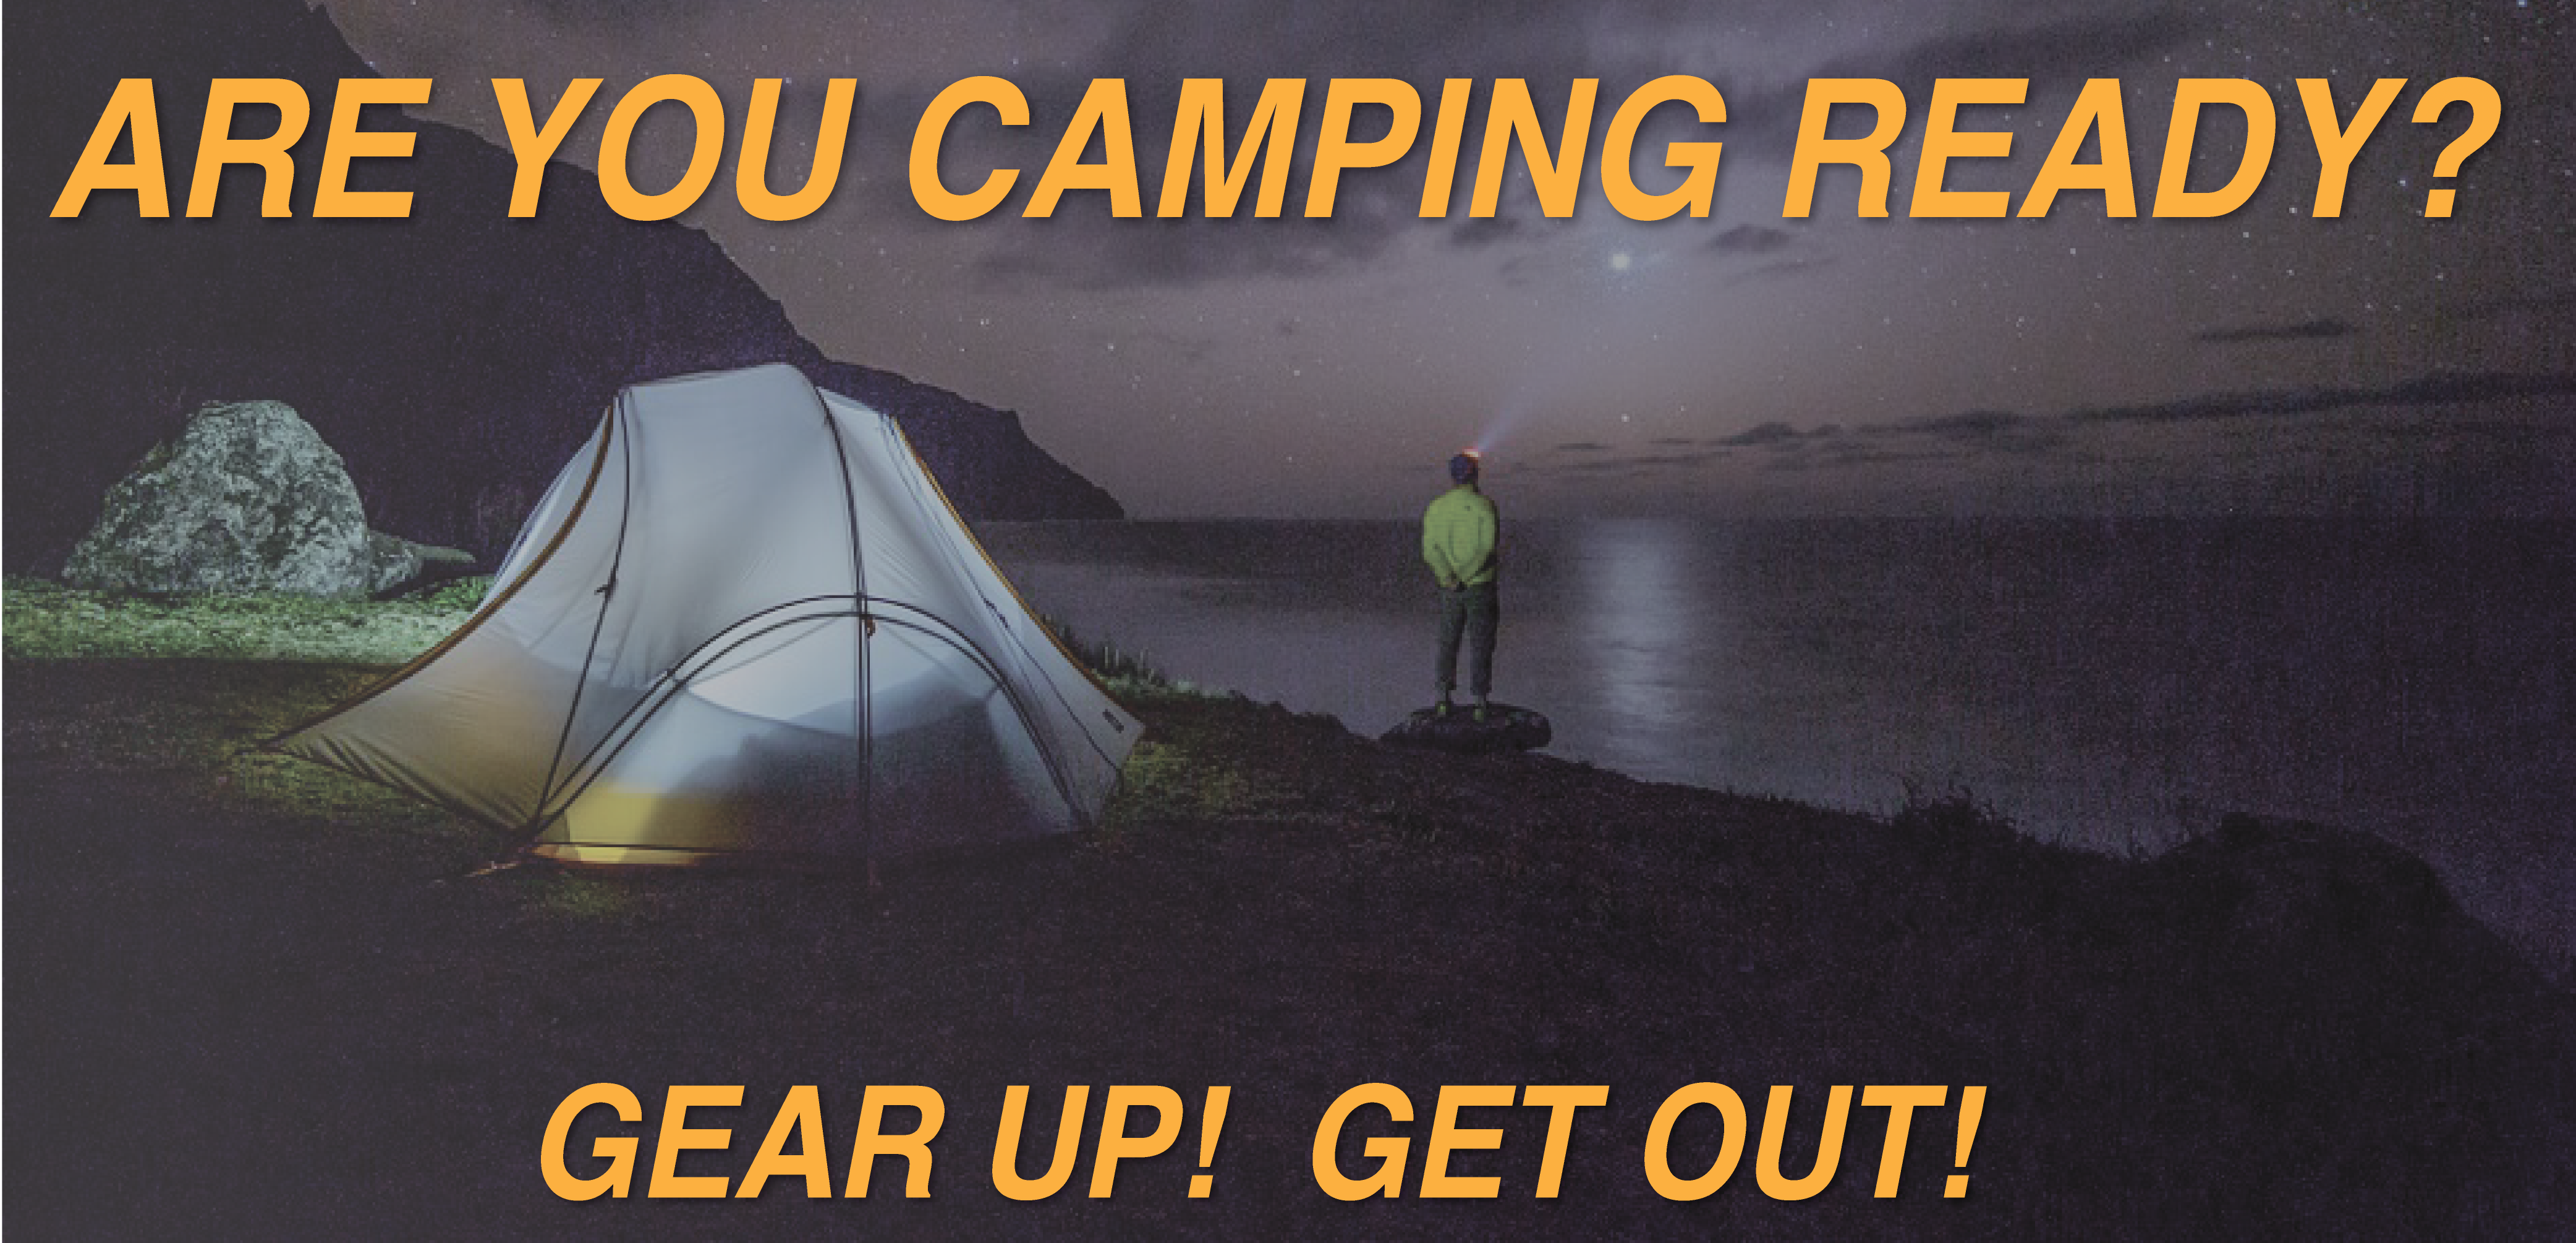 Get ready for camping!